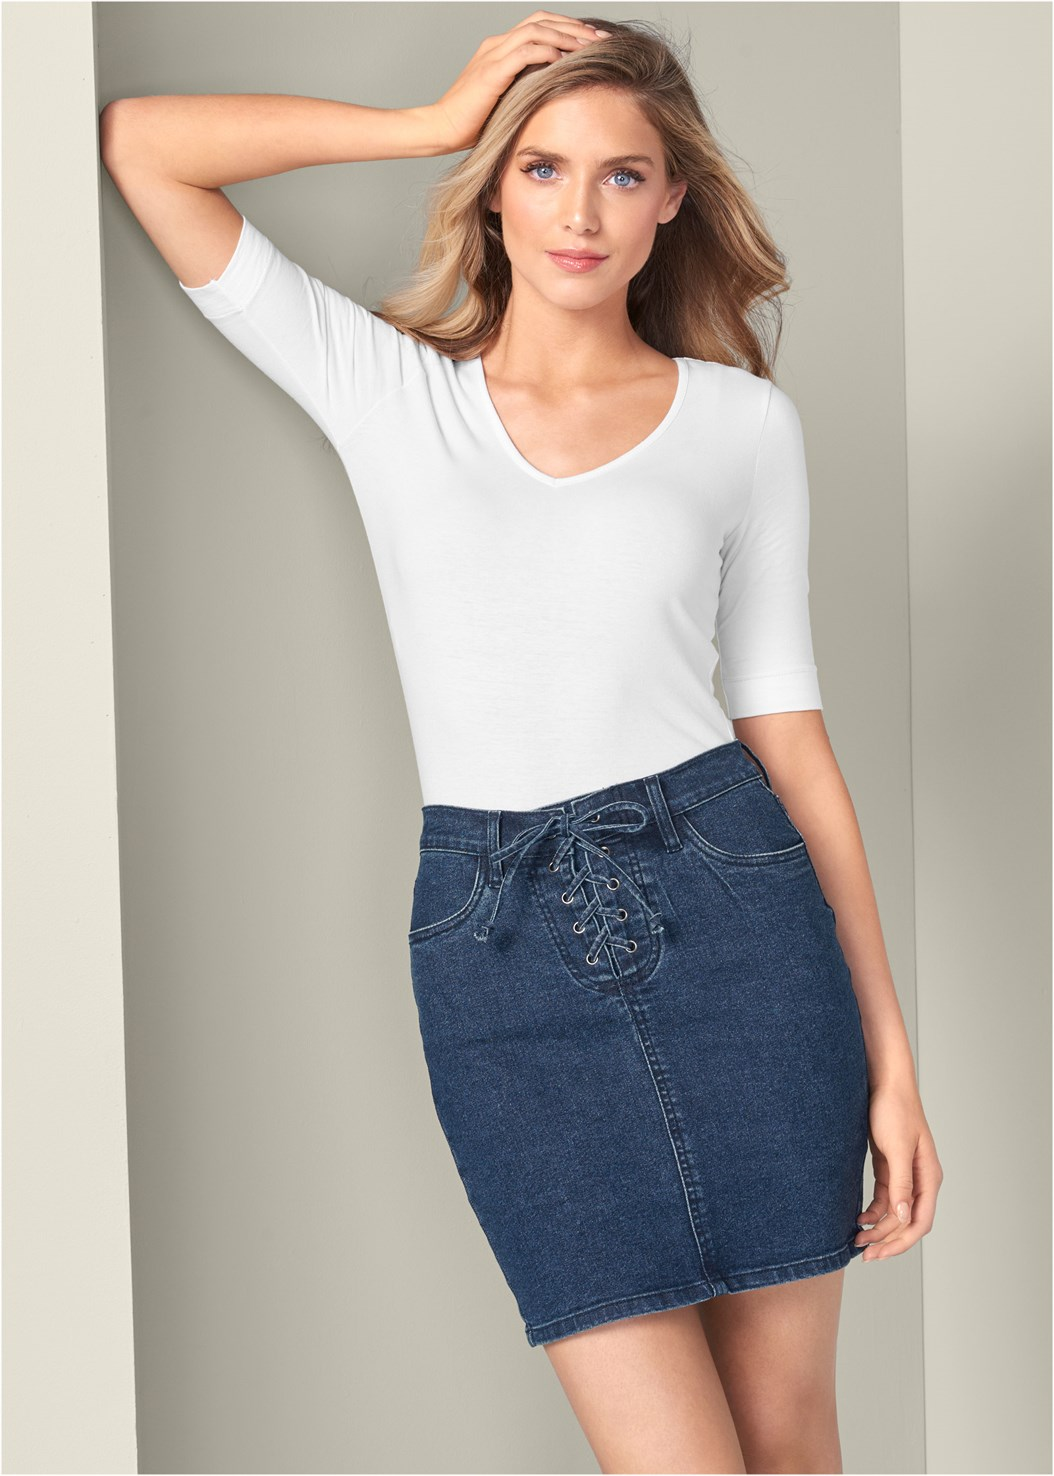 Lace Up Denim Skirt,Long And Lean V-Neck Tee,Seamless Underwire Bra